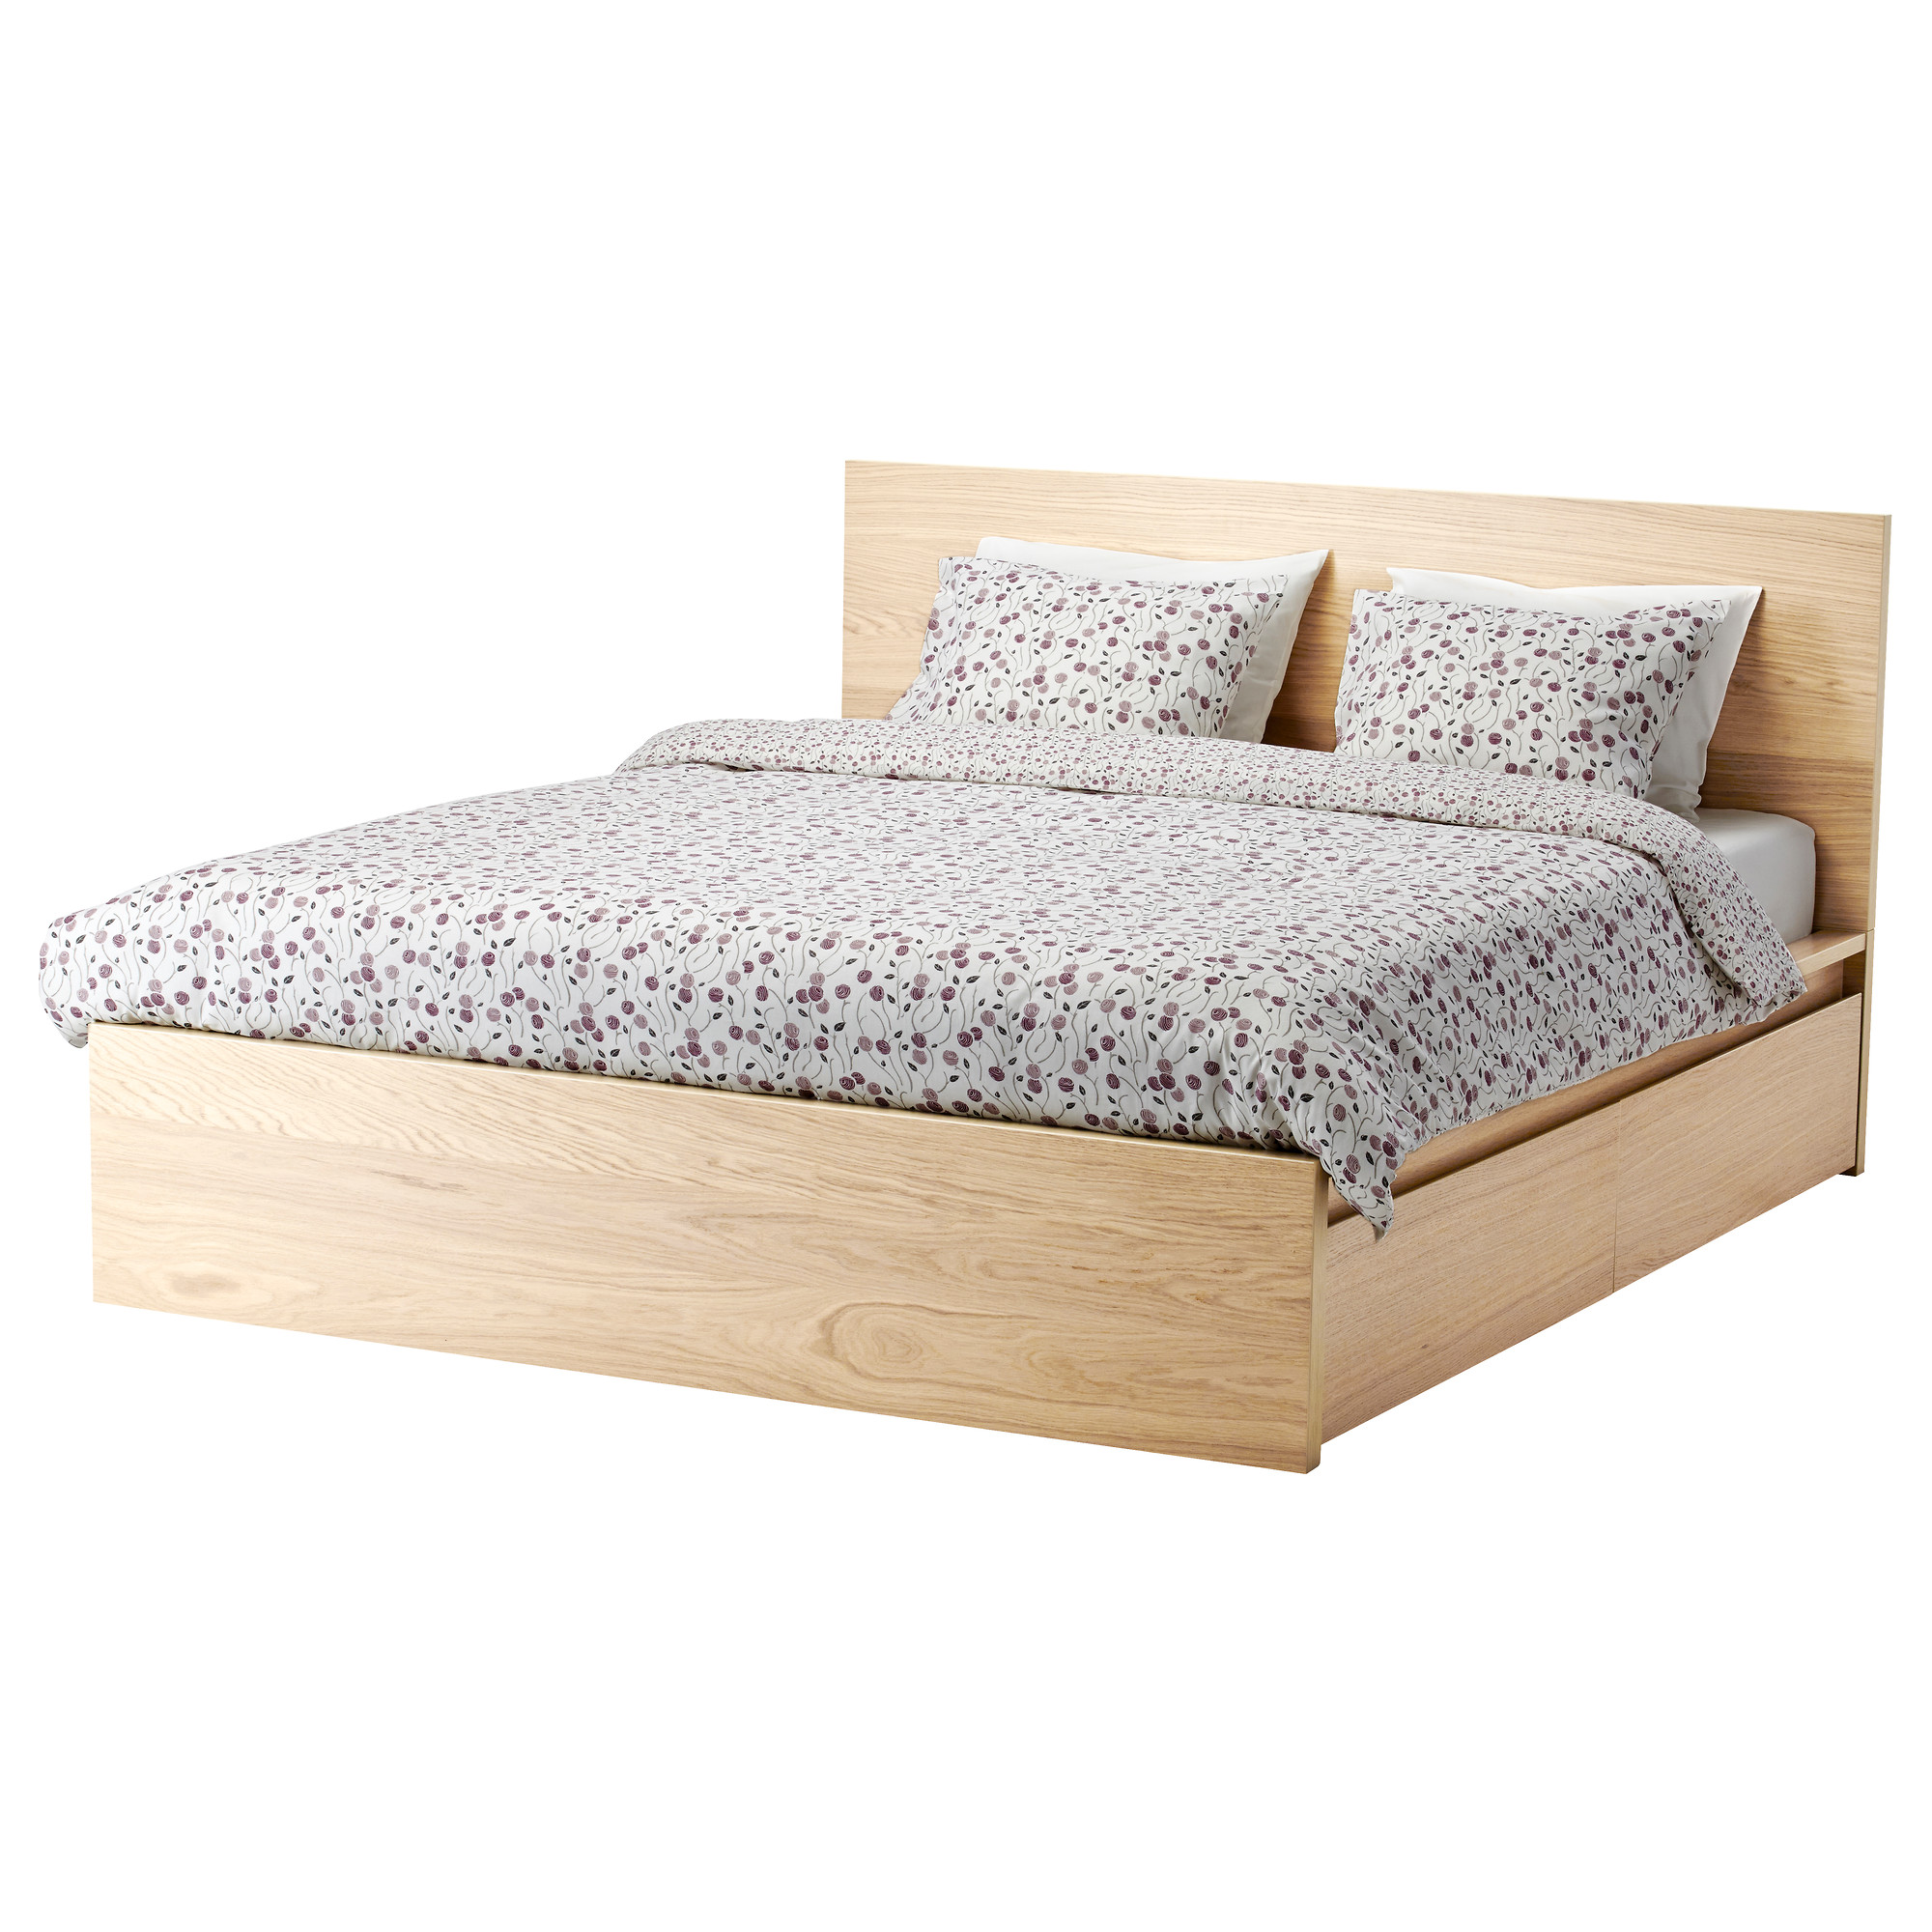 Ikea White Queen Bed queen storage bed with bookcase headboard queen headboard with storage queen bed with storage Malm High Bed Frame4 Storage Boxes Queen Lury Ikea